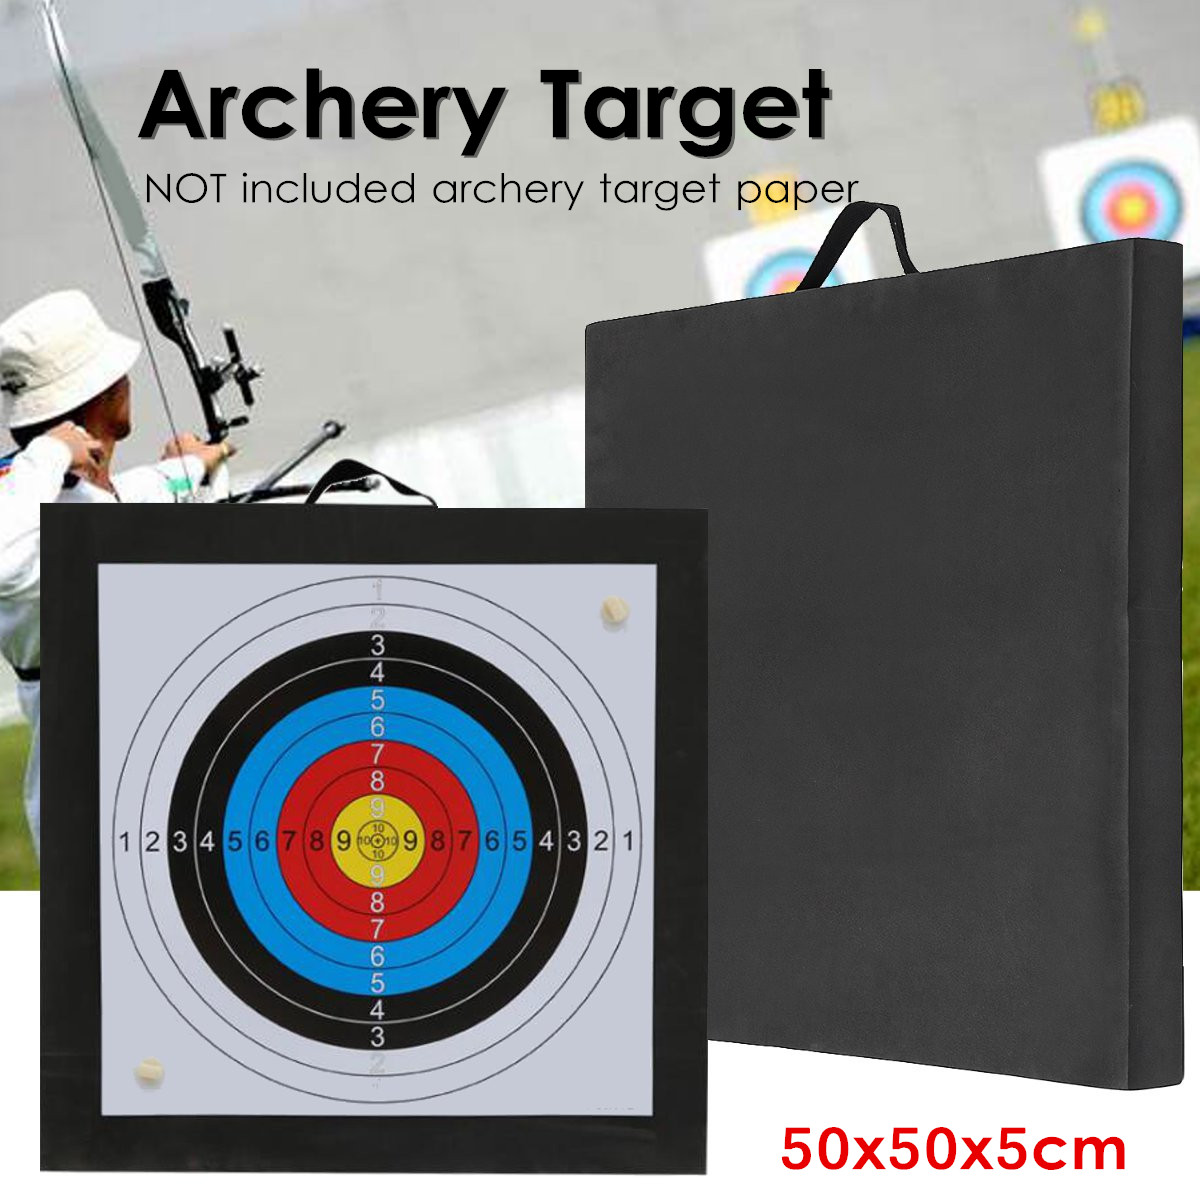 50x50x5cm Archery Target High Density EVA Foam Shooting Practice Board Outdoor Sport Hunting Accessories RecurveCrossbow50x50x5cm Archery Target High Density EVA Foam Shooting Practice Board Outdoor Sport Hunting Accessories RecurveCrossbow